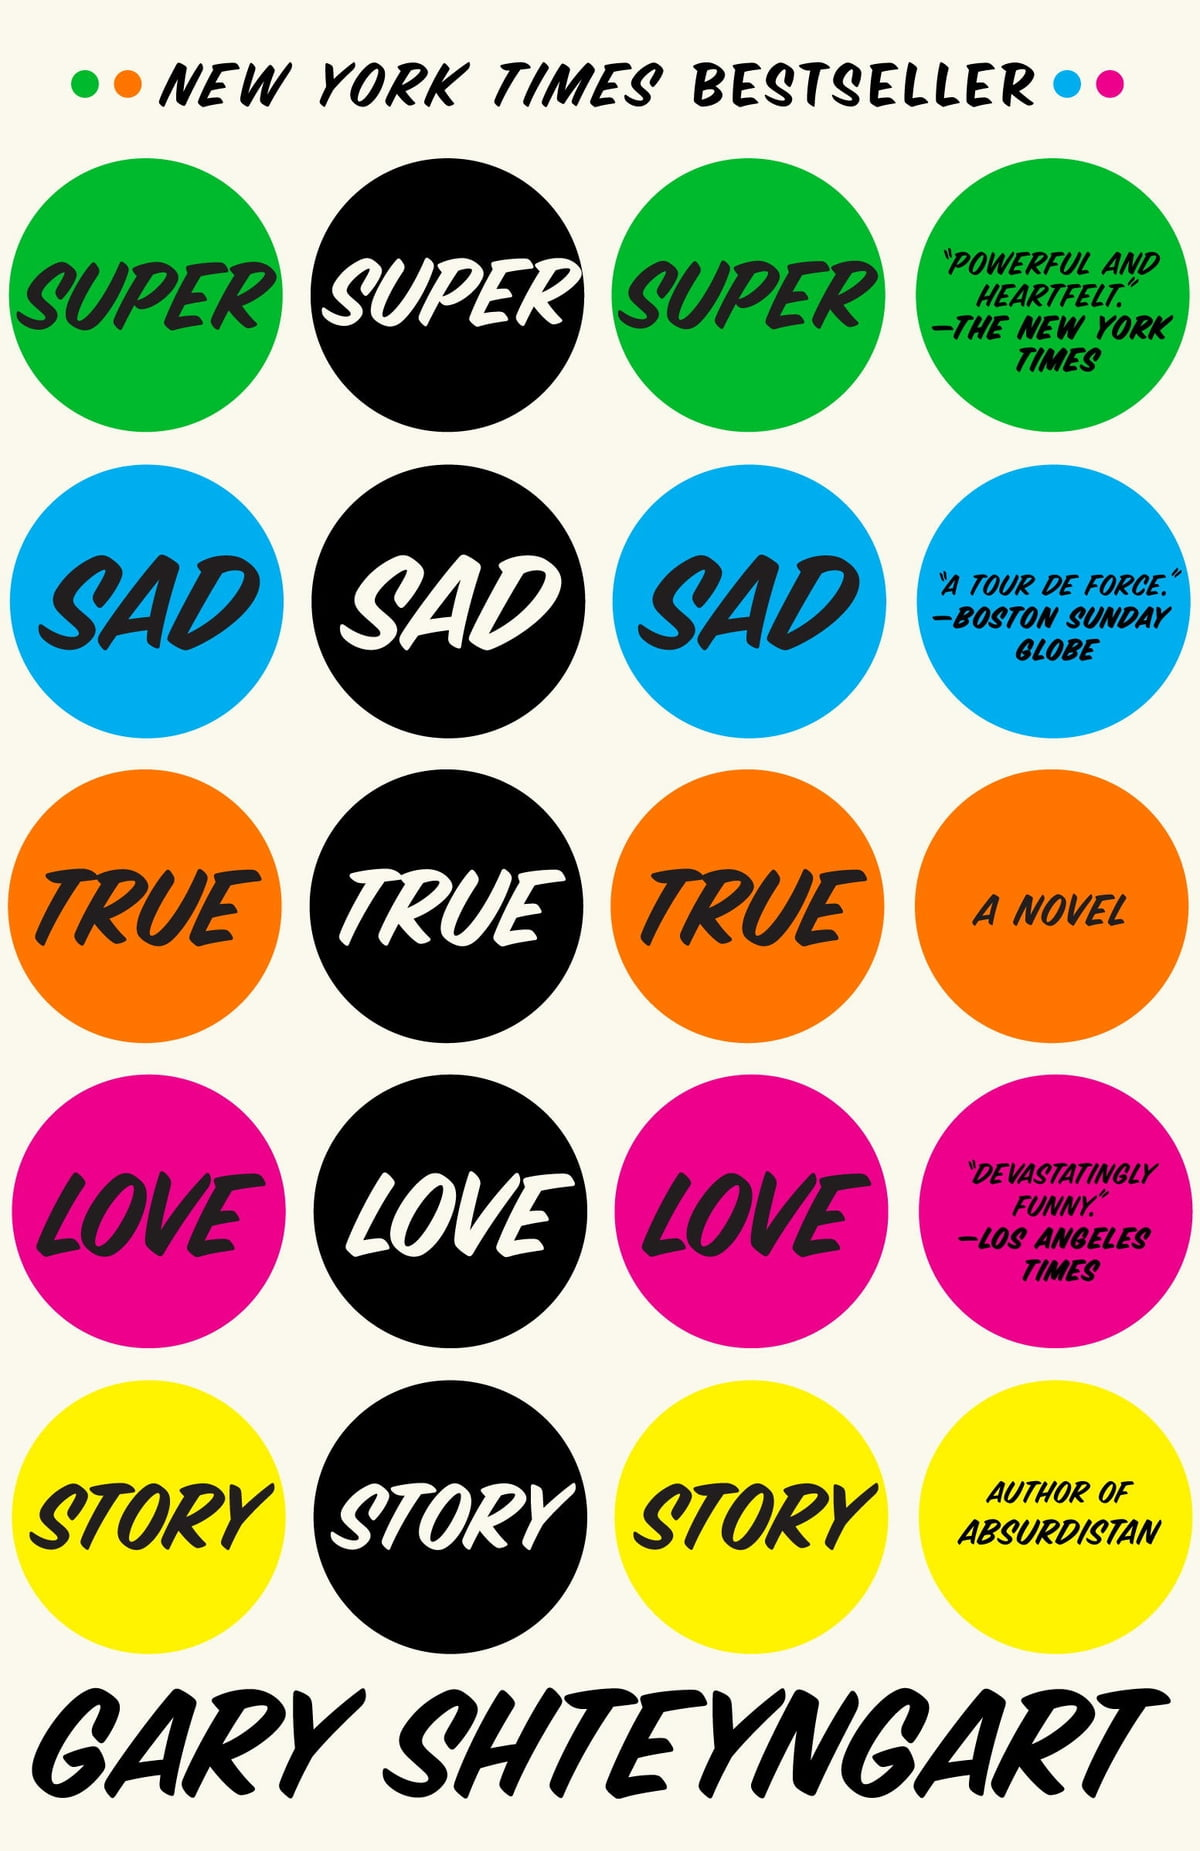 Super Sad True Love Story Ebook By Gary Shteyngart  9780679603597   Rakuten Kobo